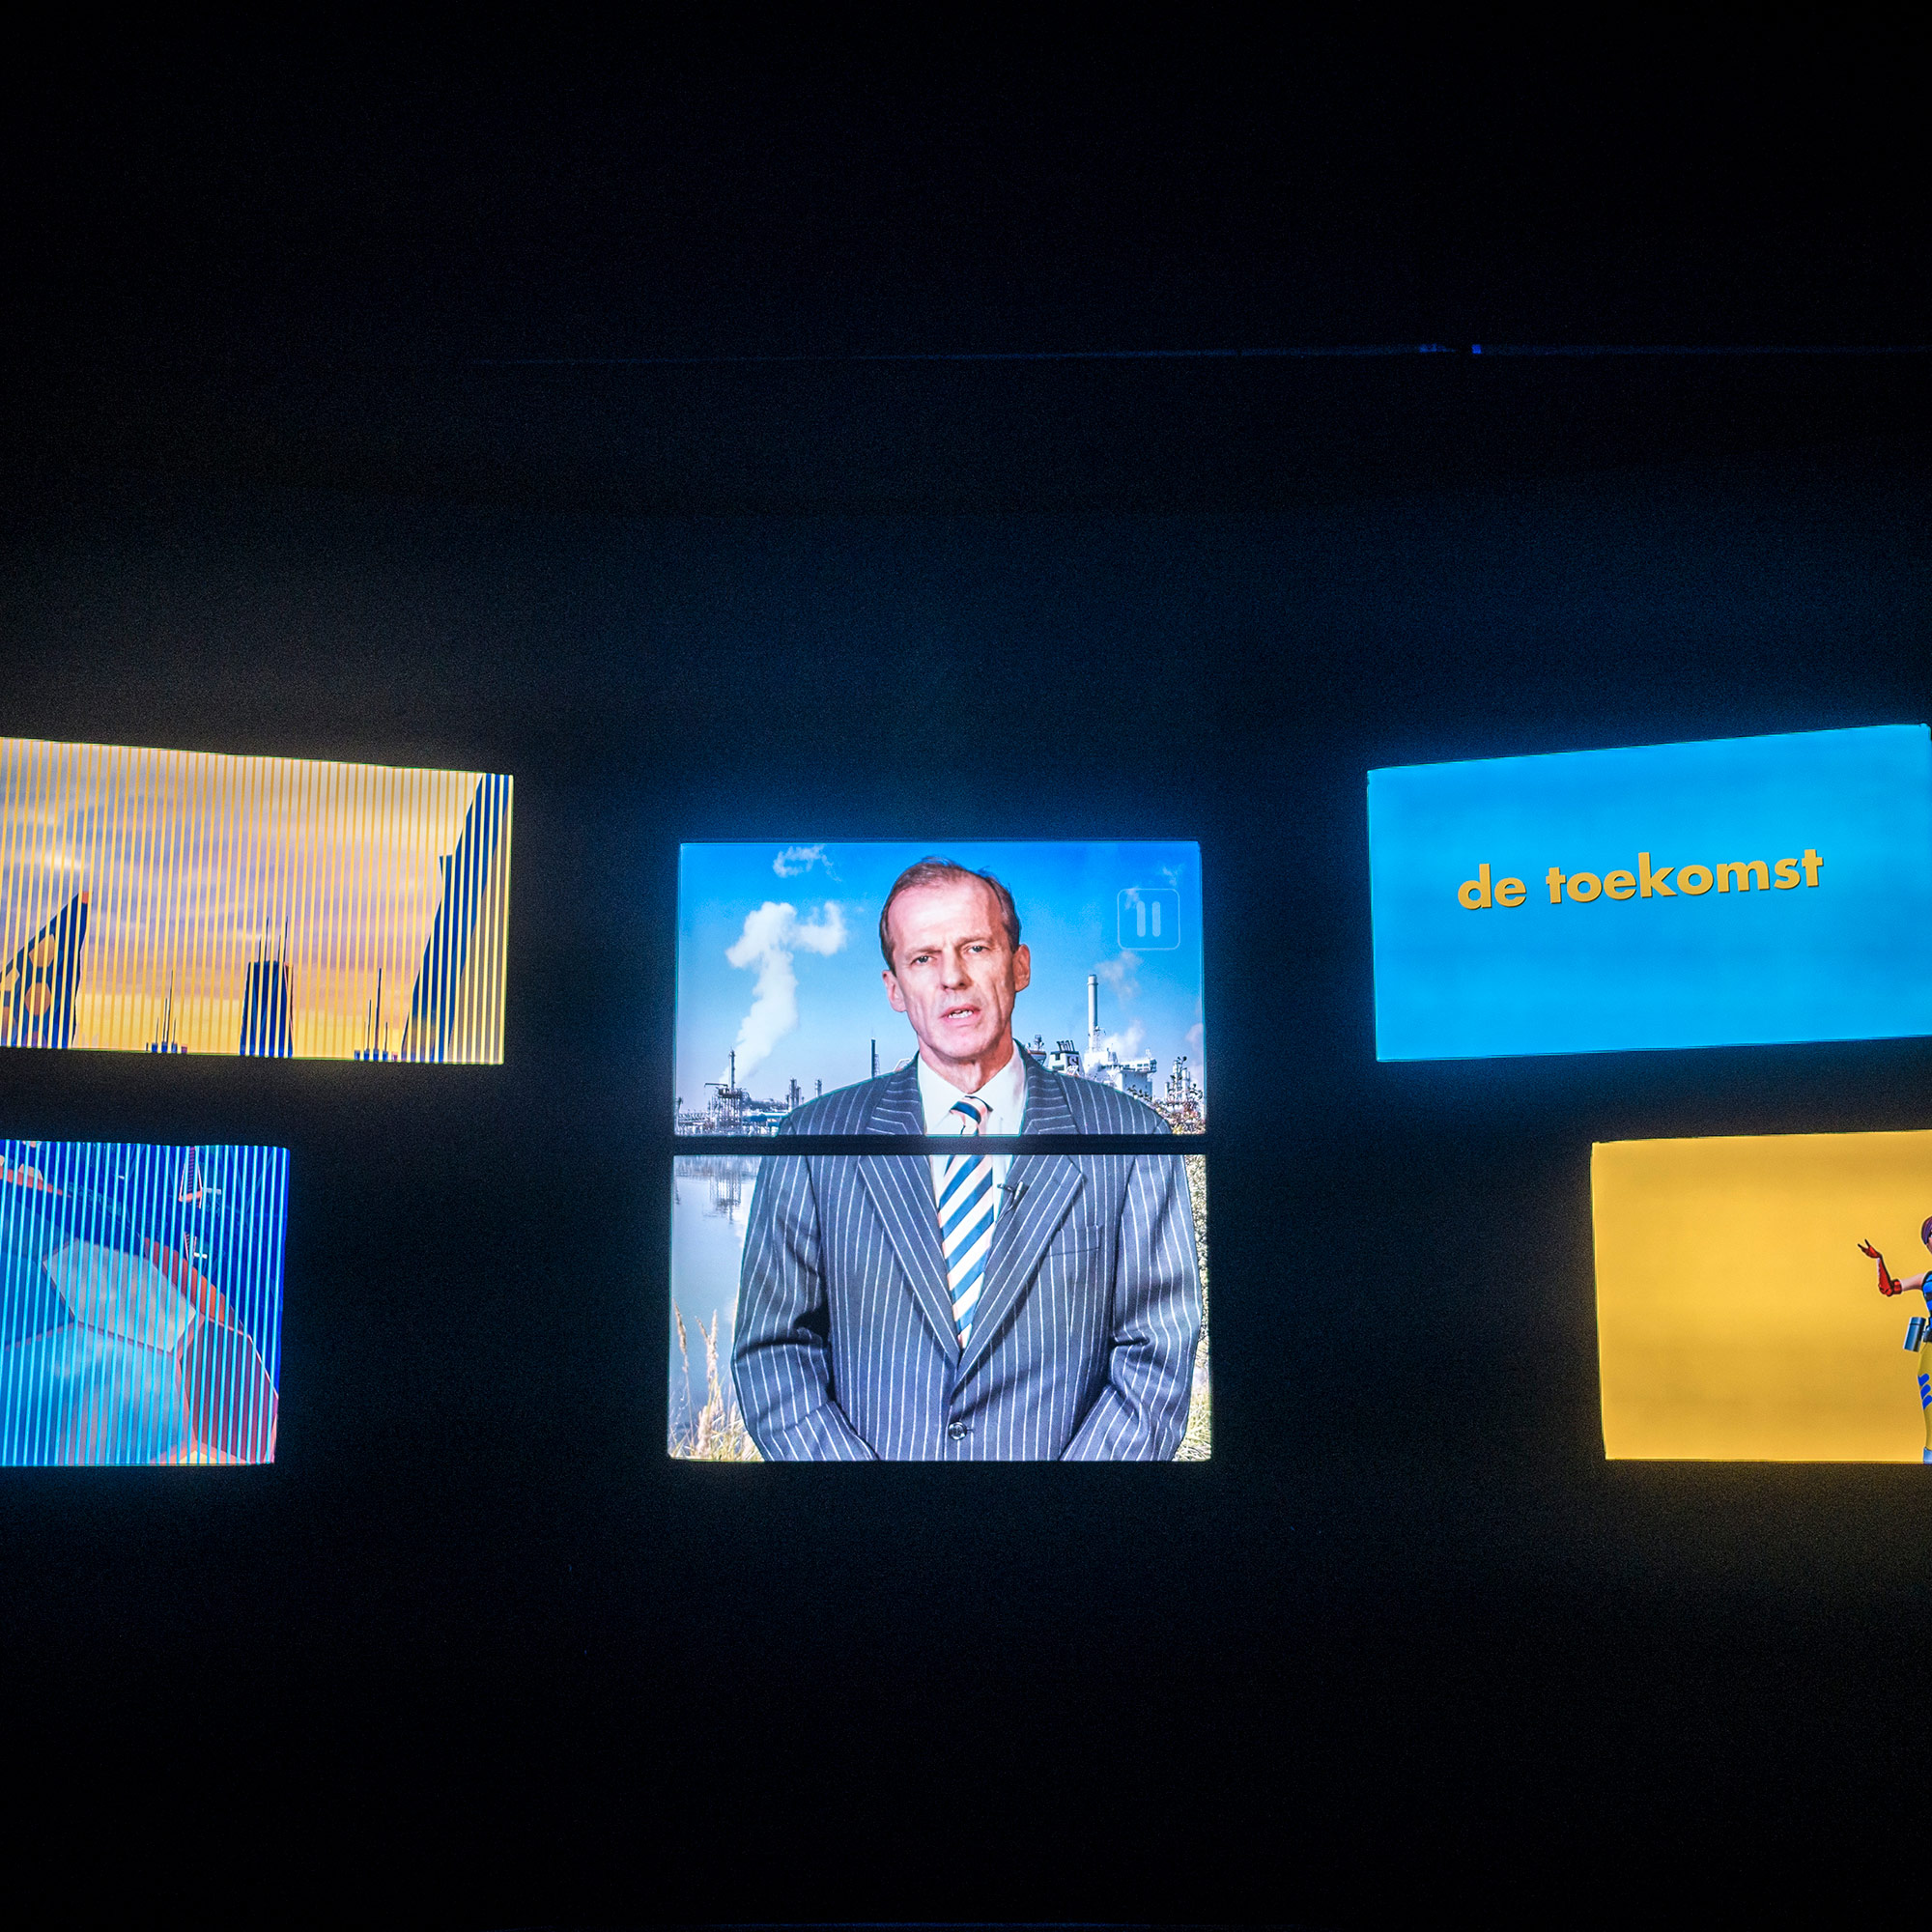 Allard Castelein, president of Rotterdam Port, is talking about the future of Rotterdam's Maasvlakte 2 (the newest and most modern addition to the port) in a video at Futureland, the visitor center of Maasvlakte 2. (Photo by Joris van Gennip/GroundTruth)